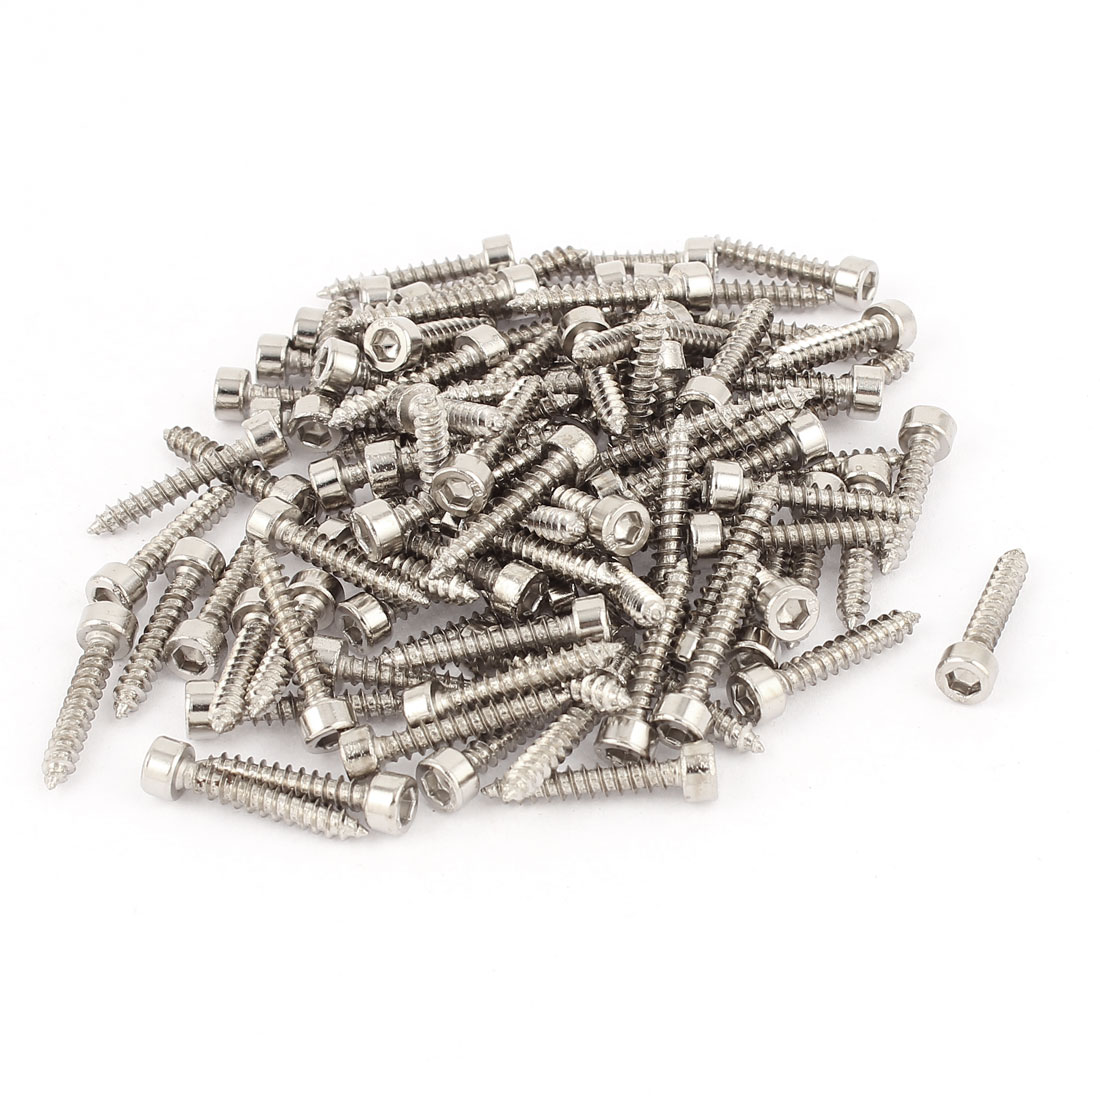 3.5mm x 20mm Threaded Hexagon Head Self Tapping Screws Silver Tone 100 Pcs